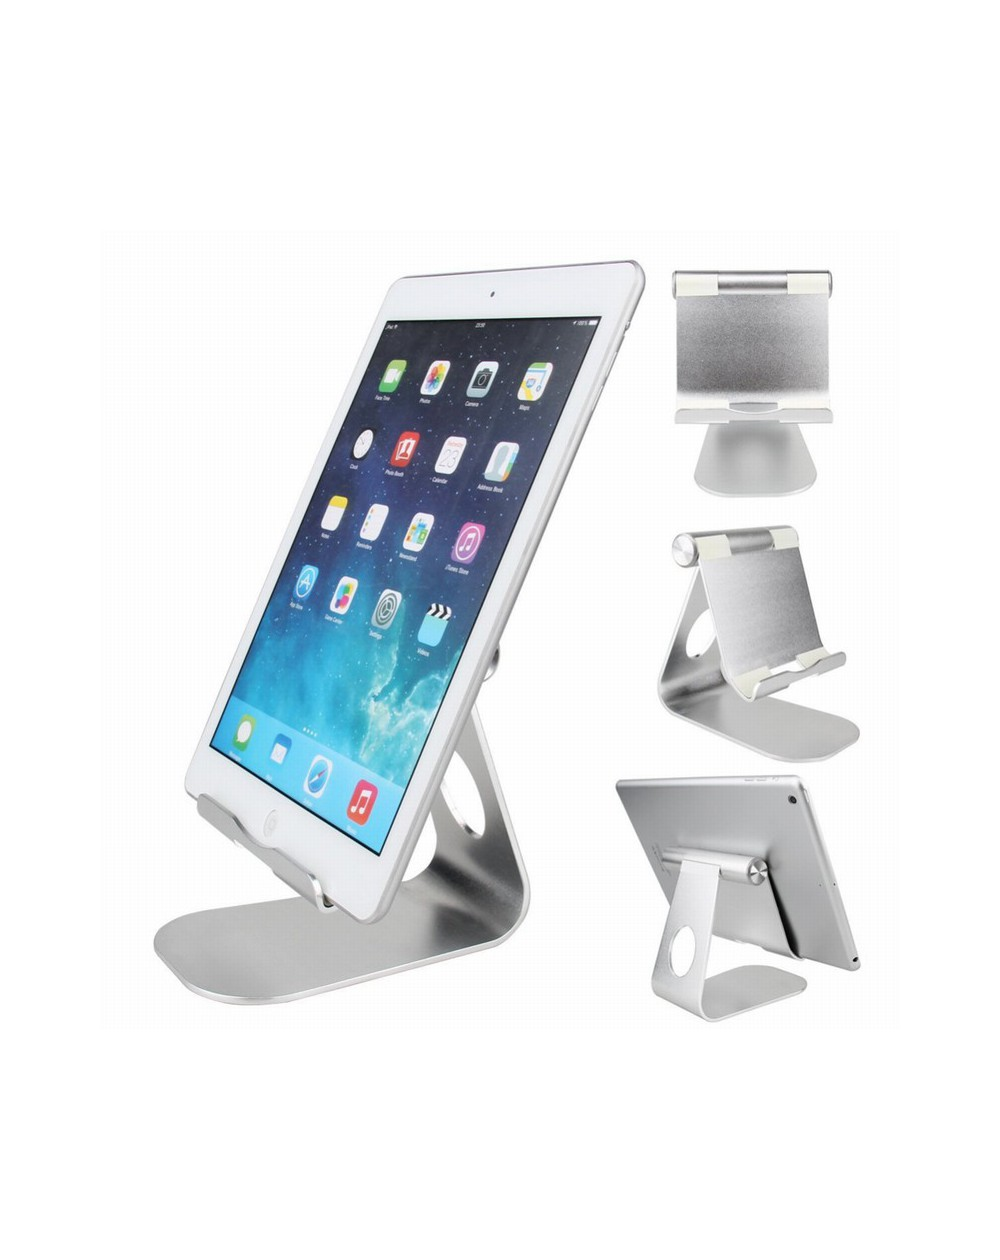 Soporte para iPad flexible de aluminio.